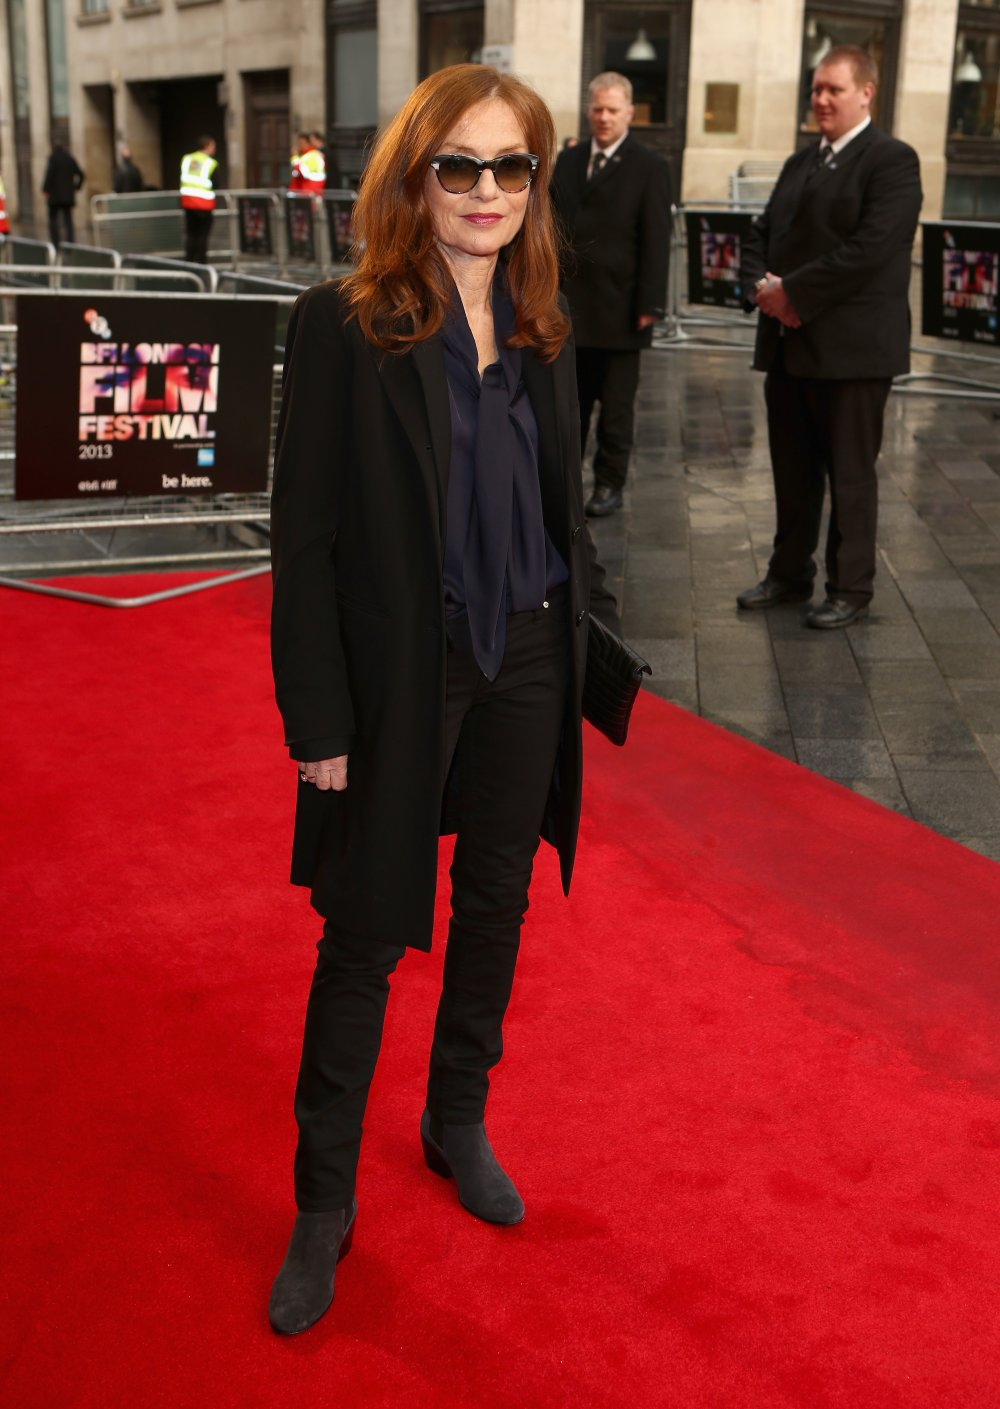 Isabelle Huppert attends a screening of Abuse of Weakness during the 57th BFI London Film Festival at Odeon West End.